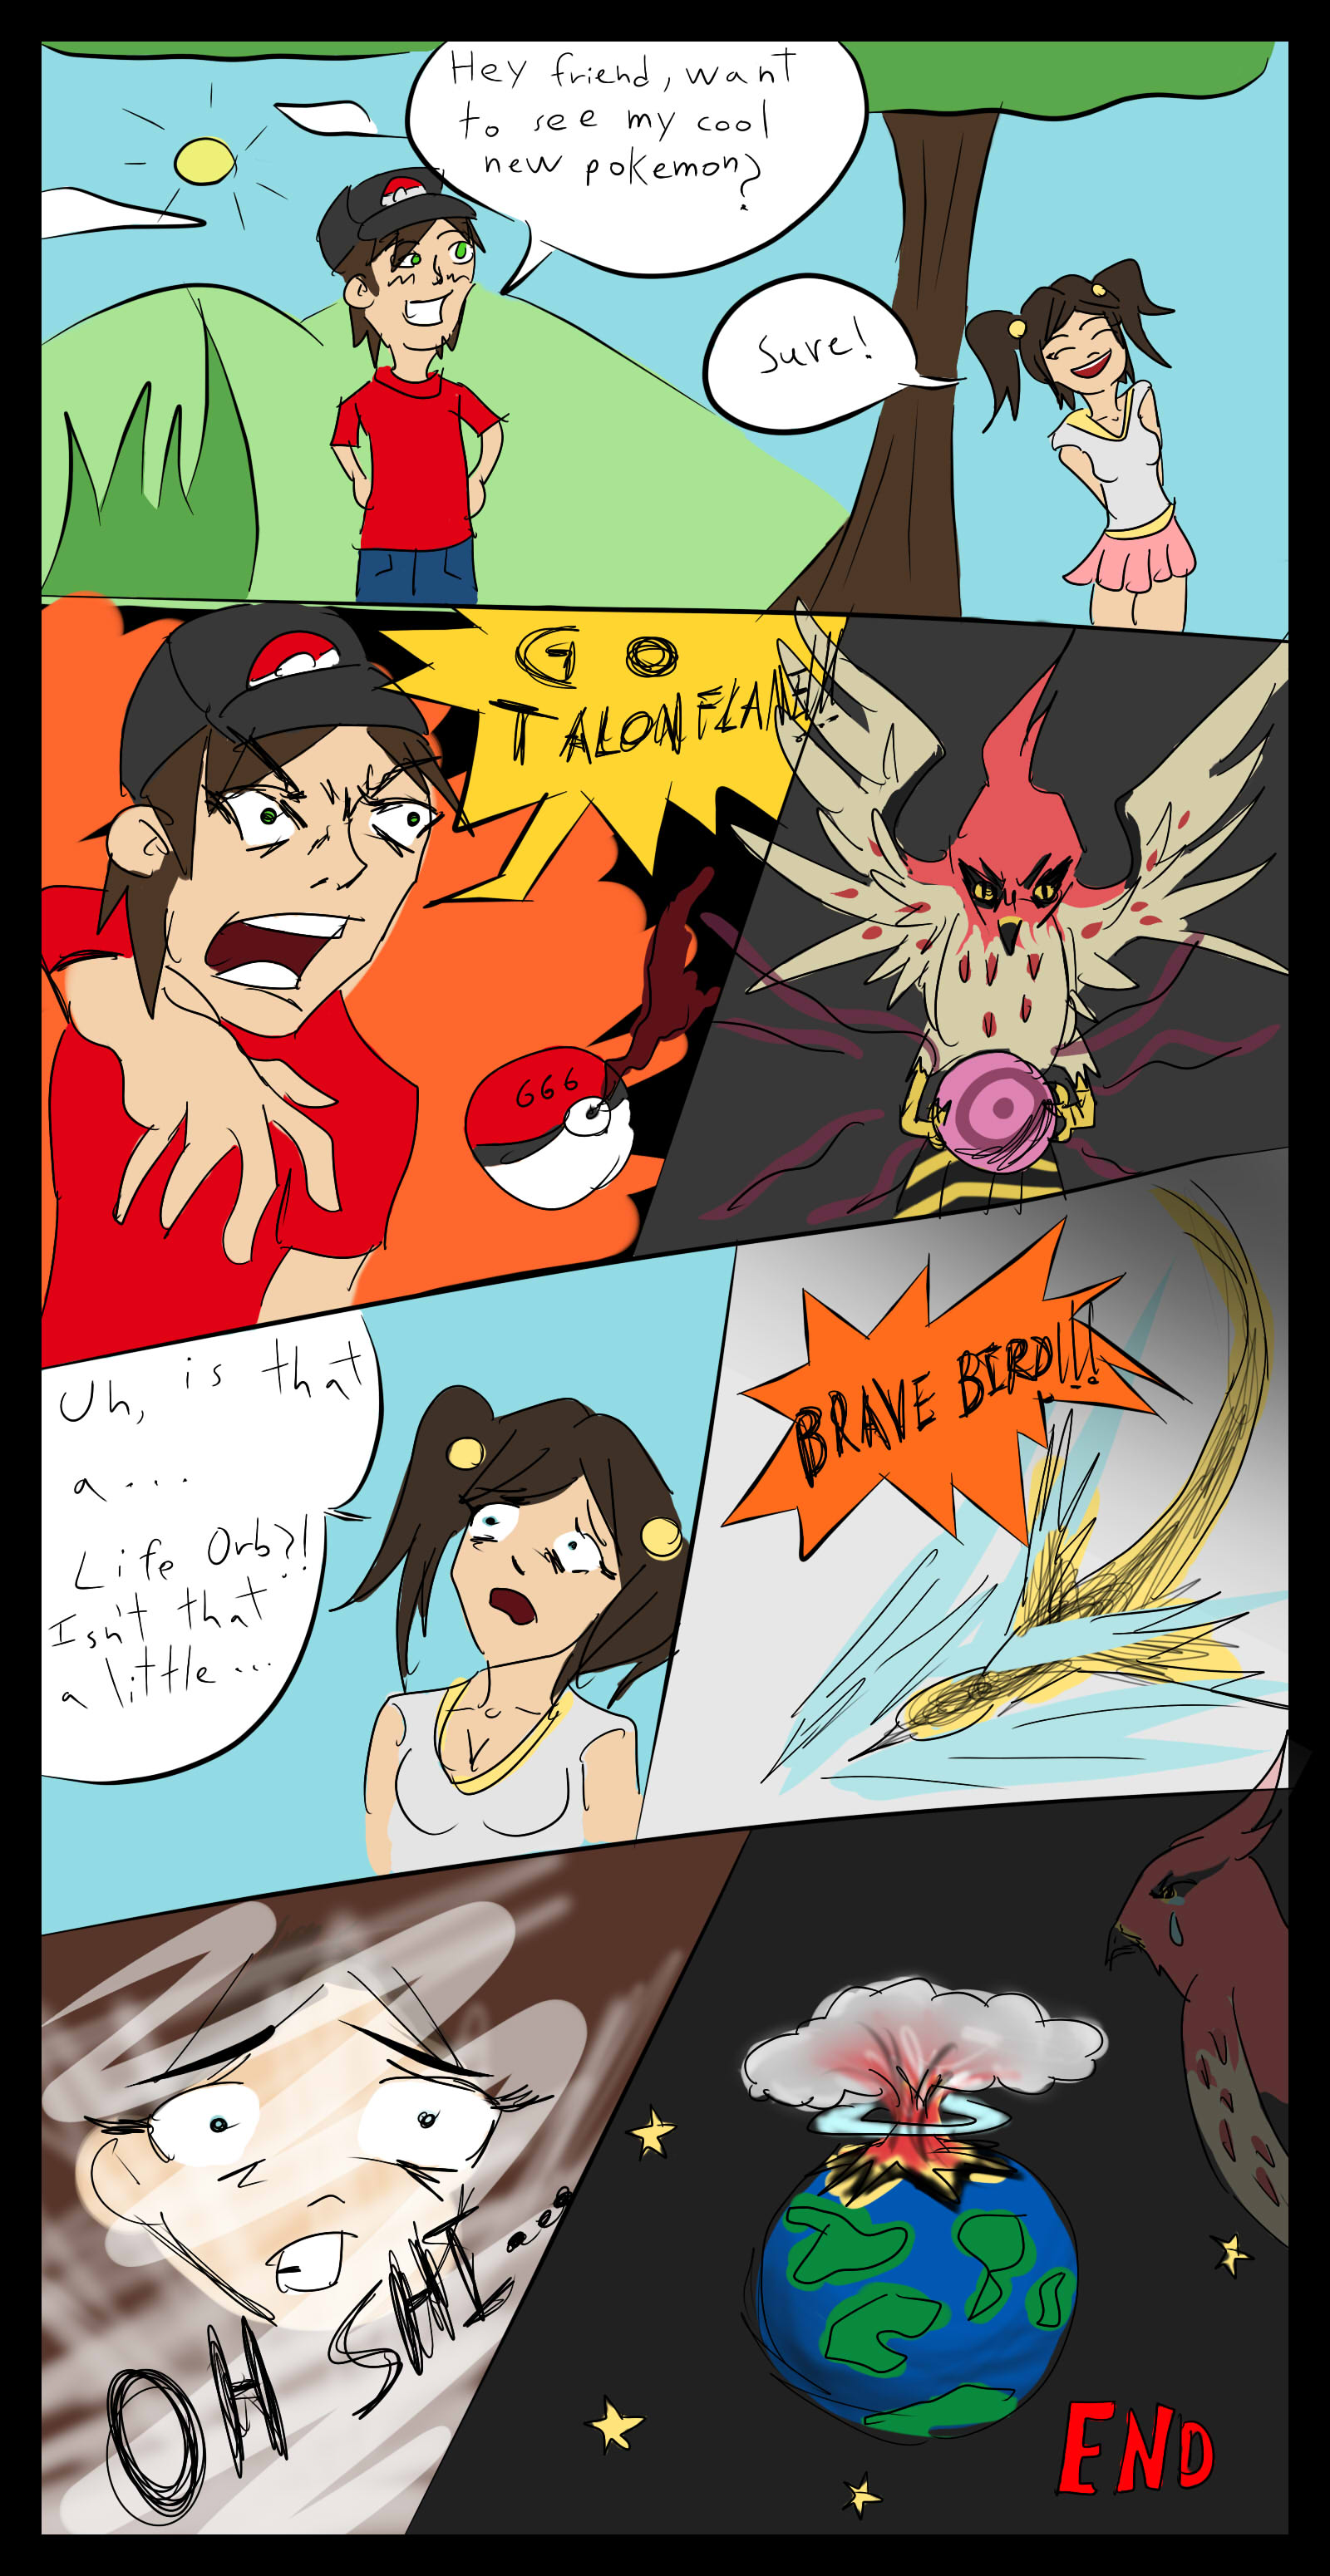 The Dangers of Talonflame